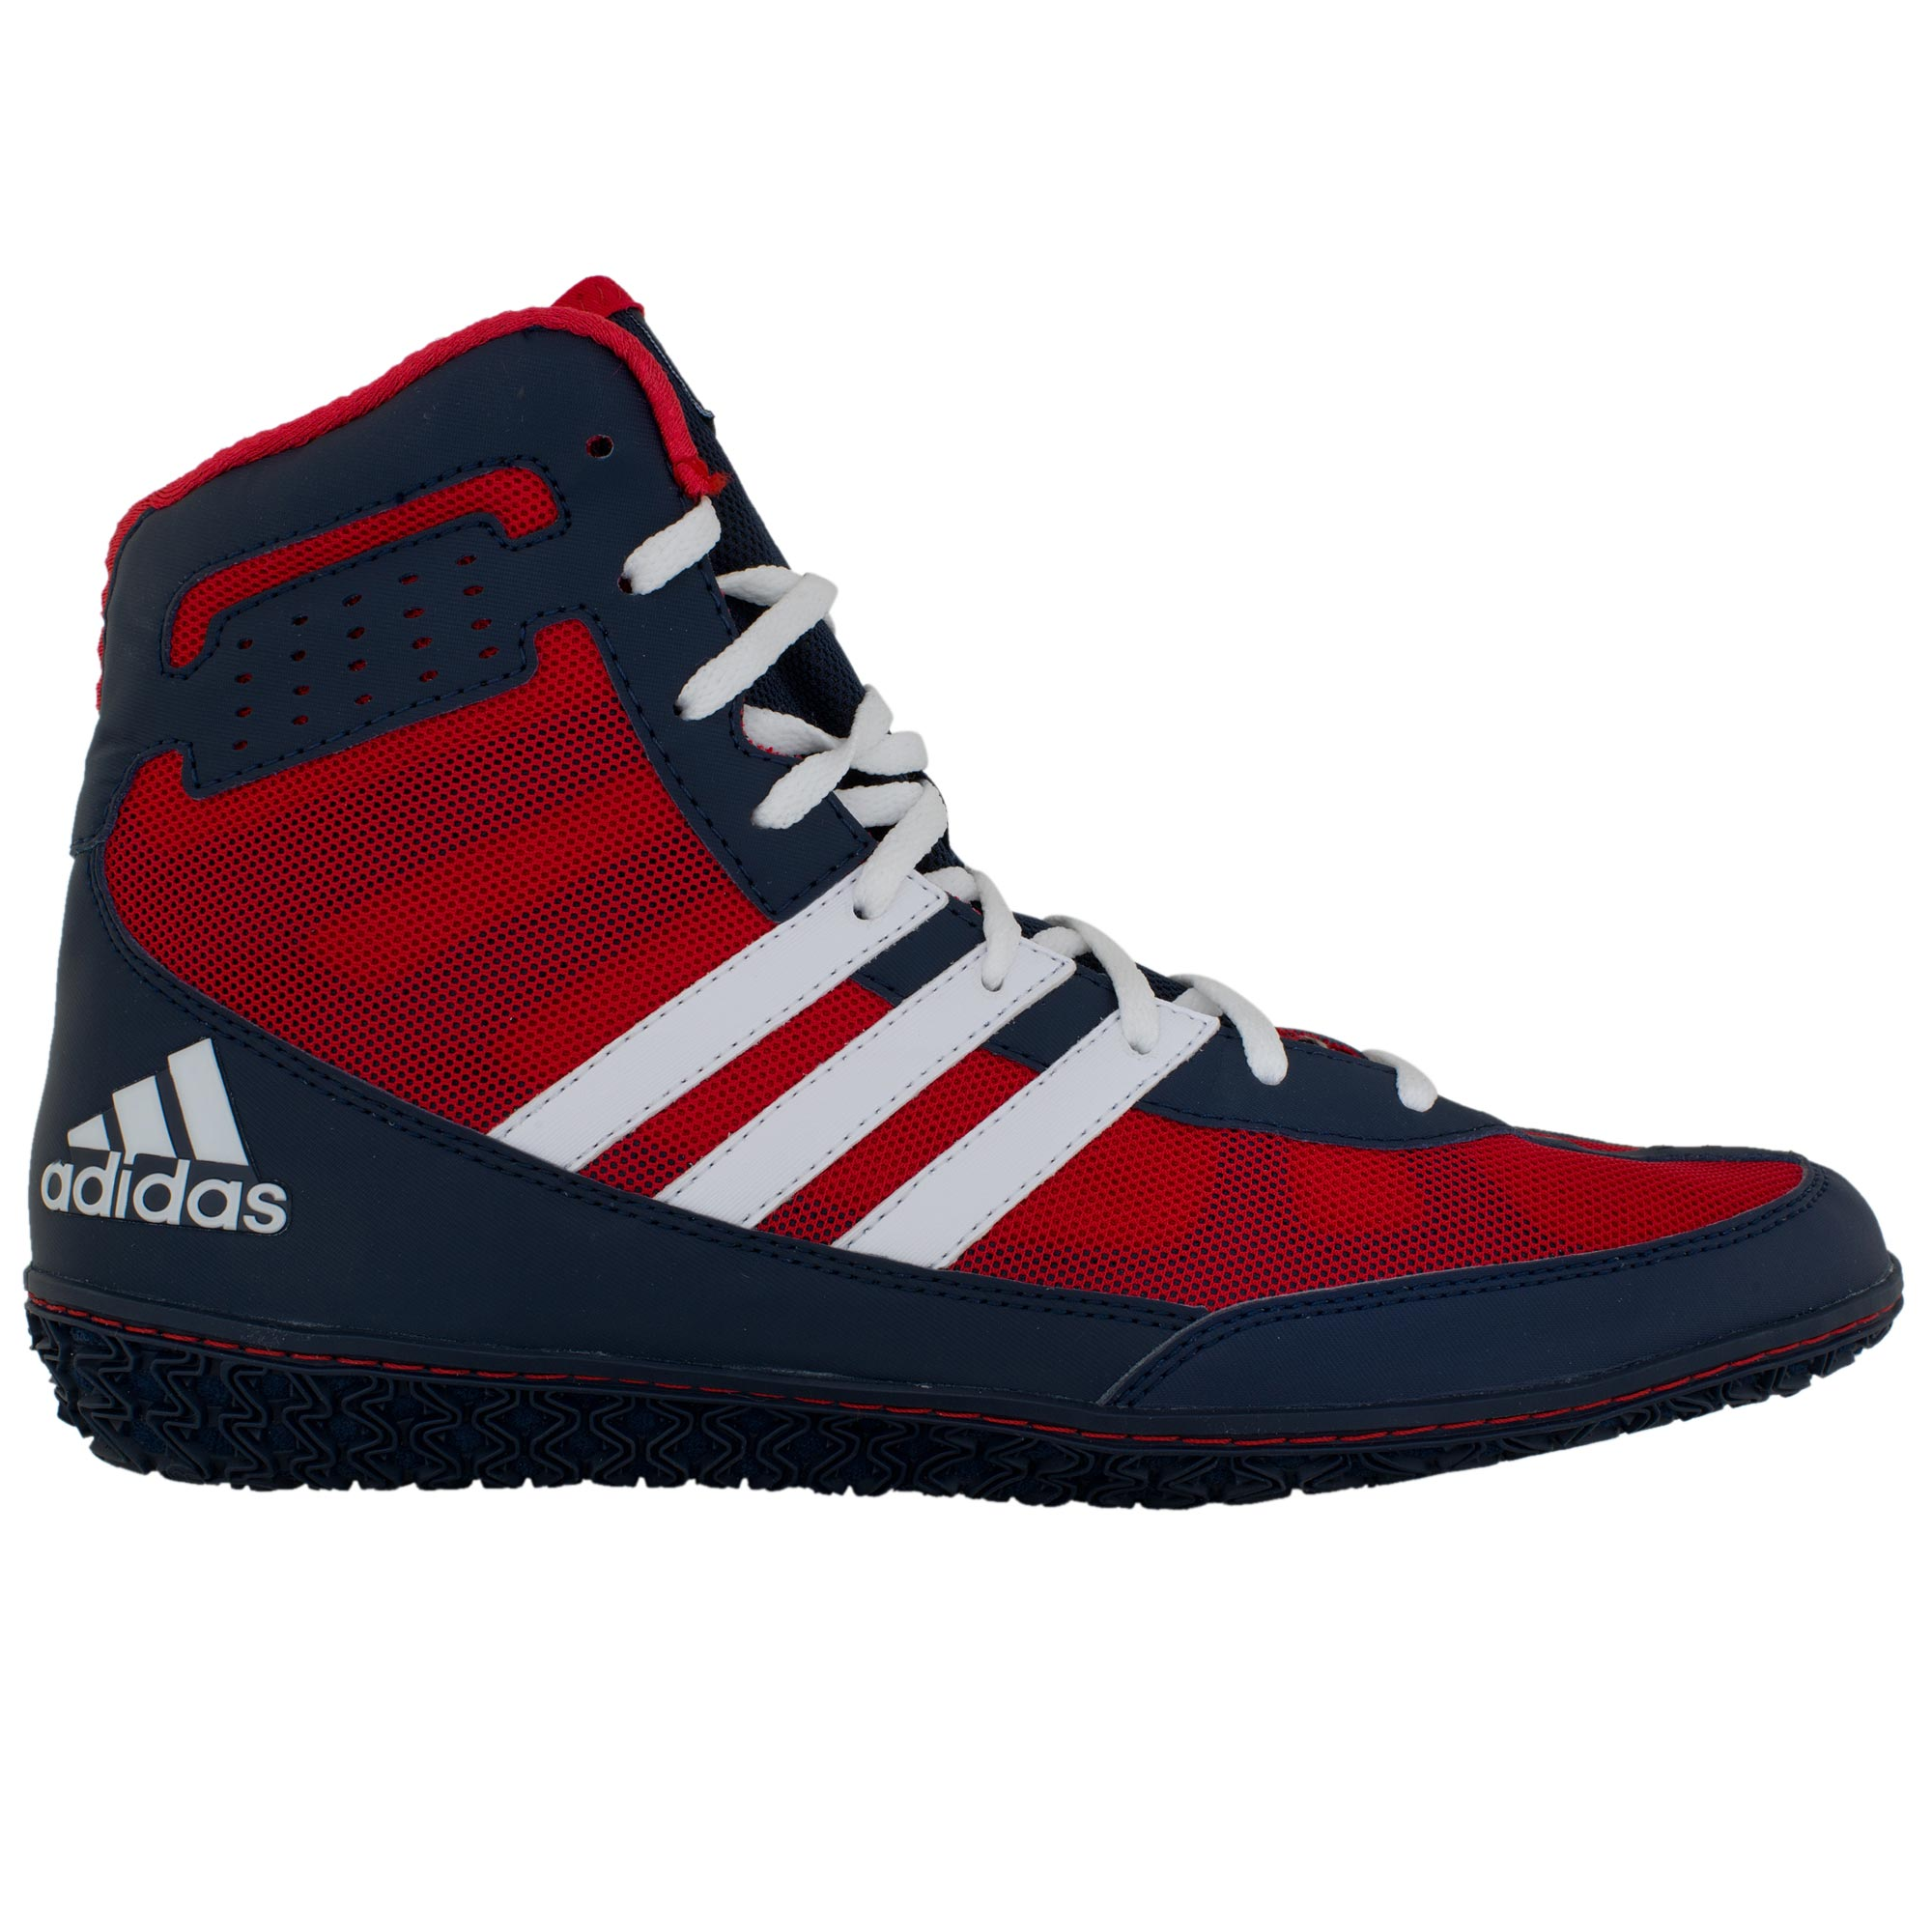 f88a819975e8 Adidas Mat Wizards Navy White Red ...